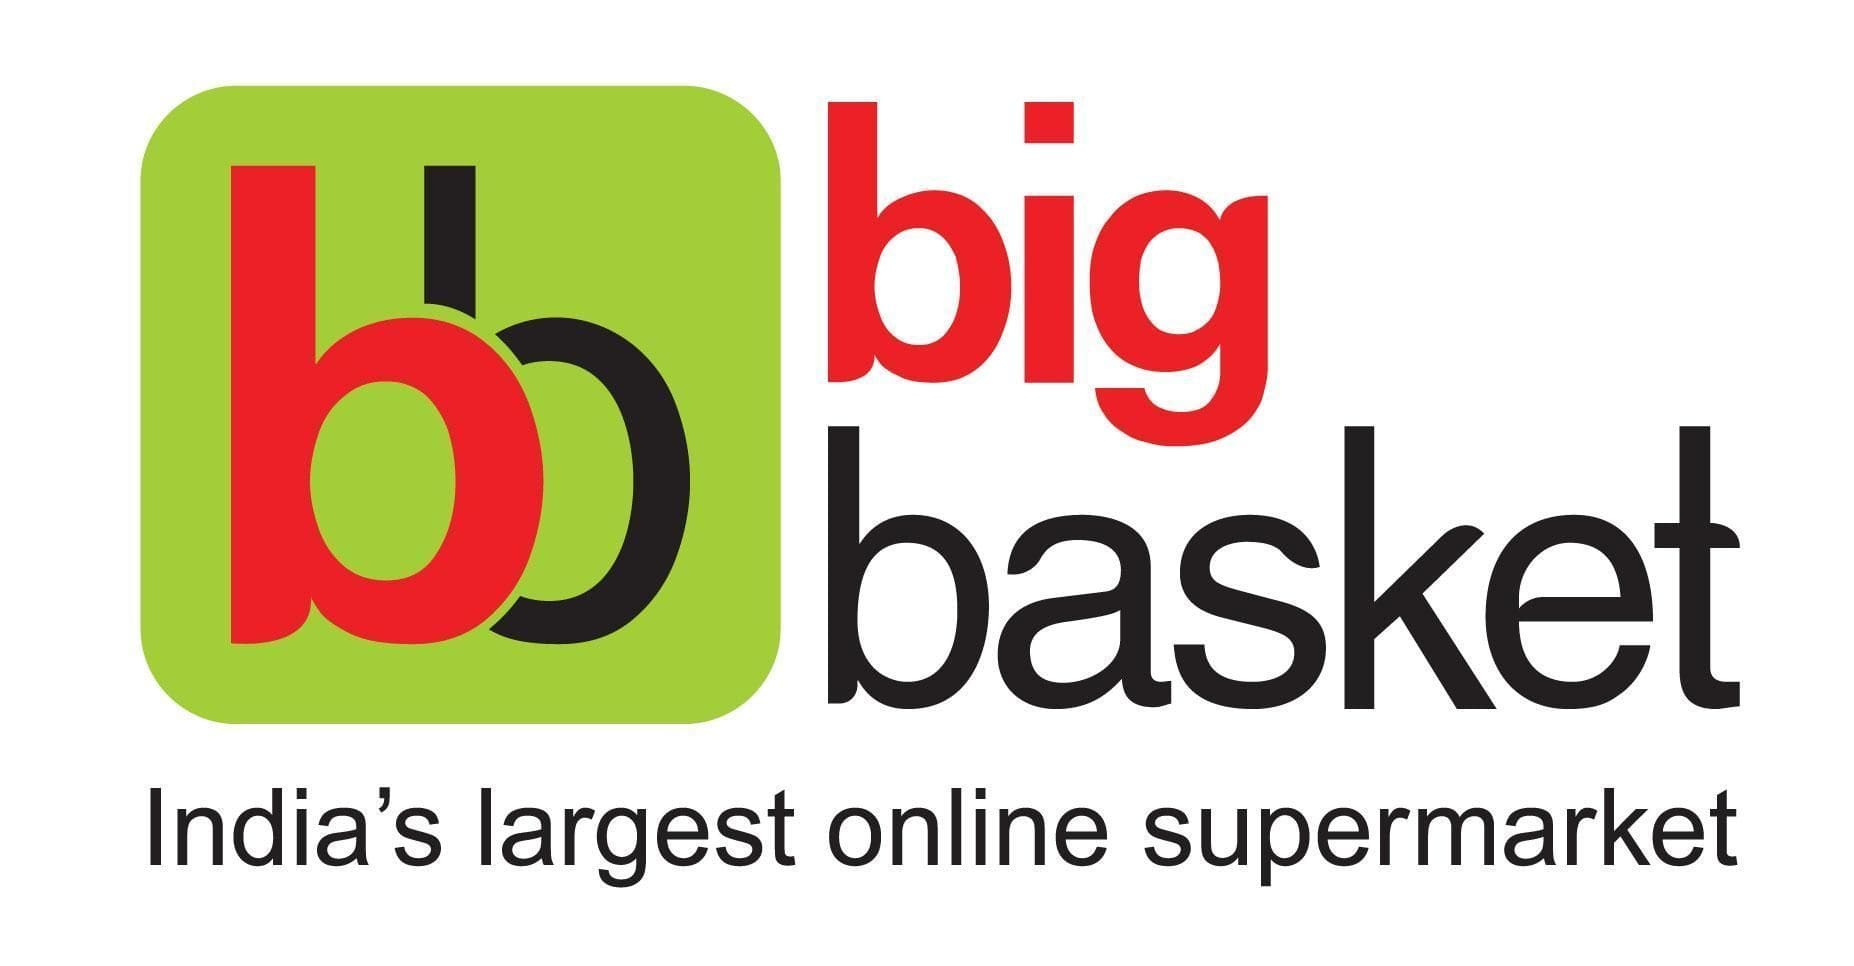 Get 20% cashback* on Bigbasket with Citi Cards (April, May, June & July)